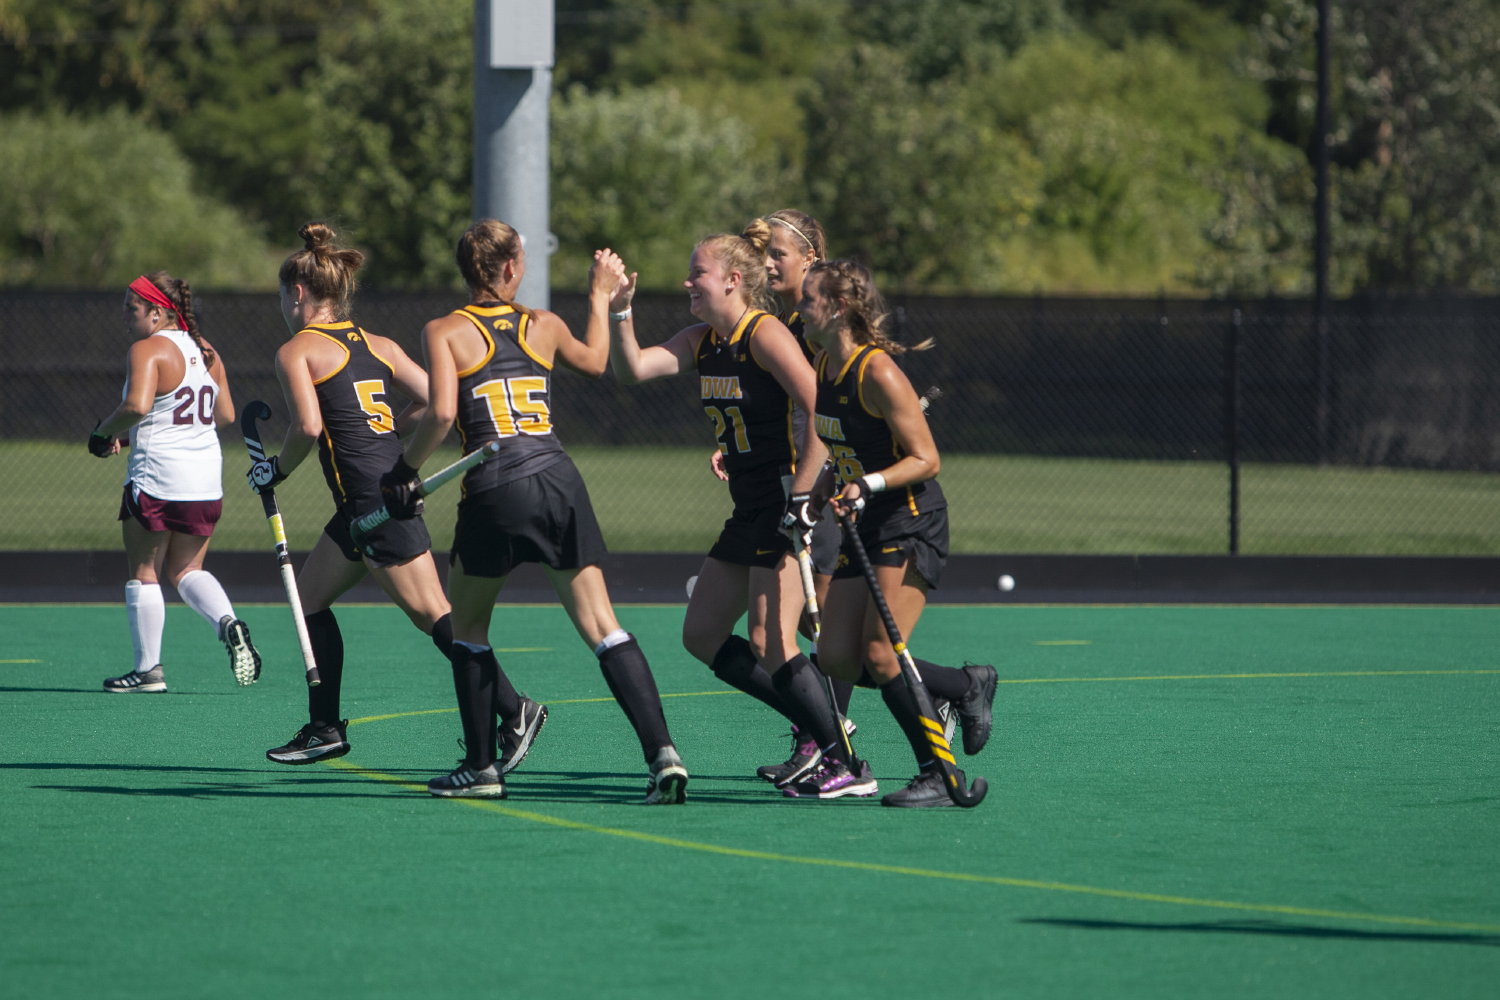 Iowa+midfielders+Esme+Gibson+and+Makenna+Maguire+celebrate+a+goal+during+a+field+hockey+game+between+Iowa+and+Central+Michigan+at+Grant+Field+on+Friday%2C+September+6%2C+2019.+The+Hawkeyes+defeated+the+Chippewas%2C+11-0.